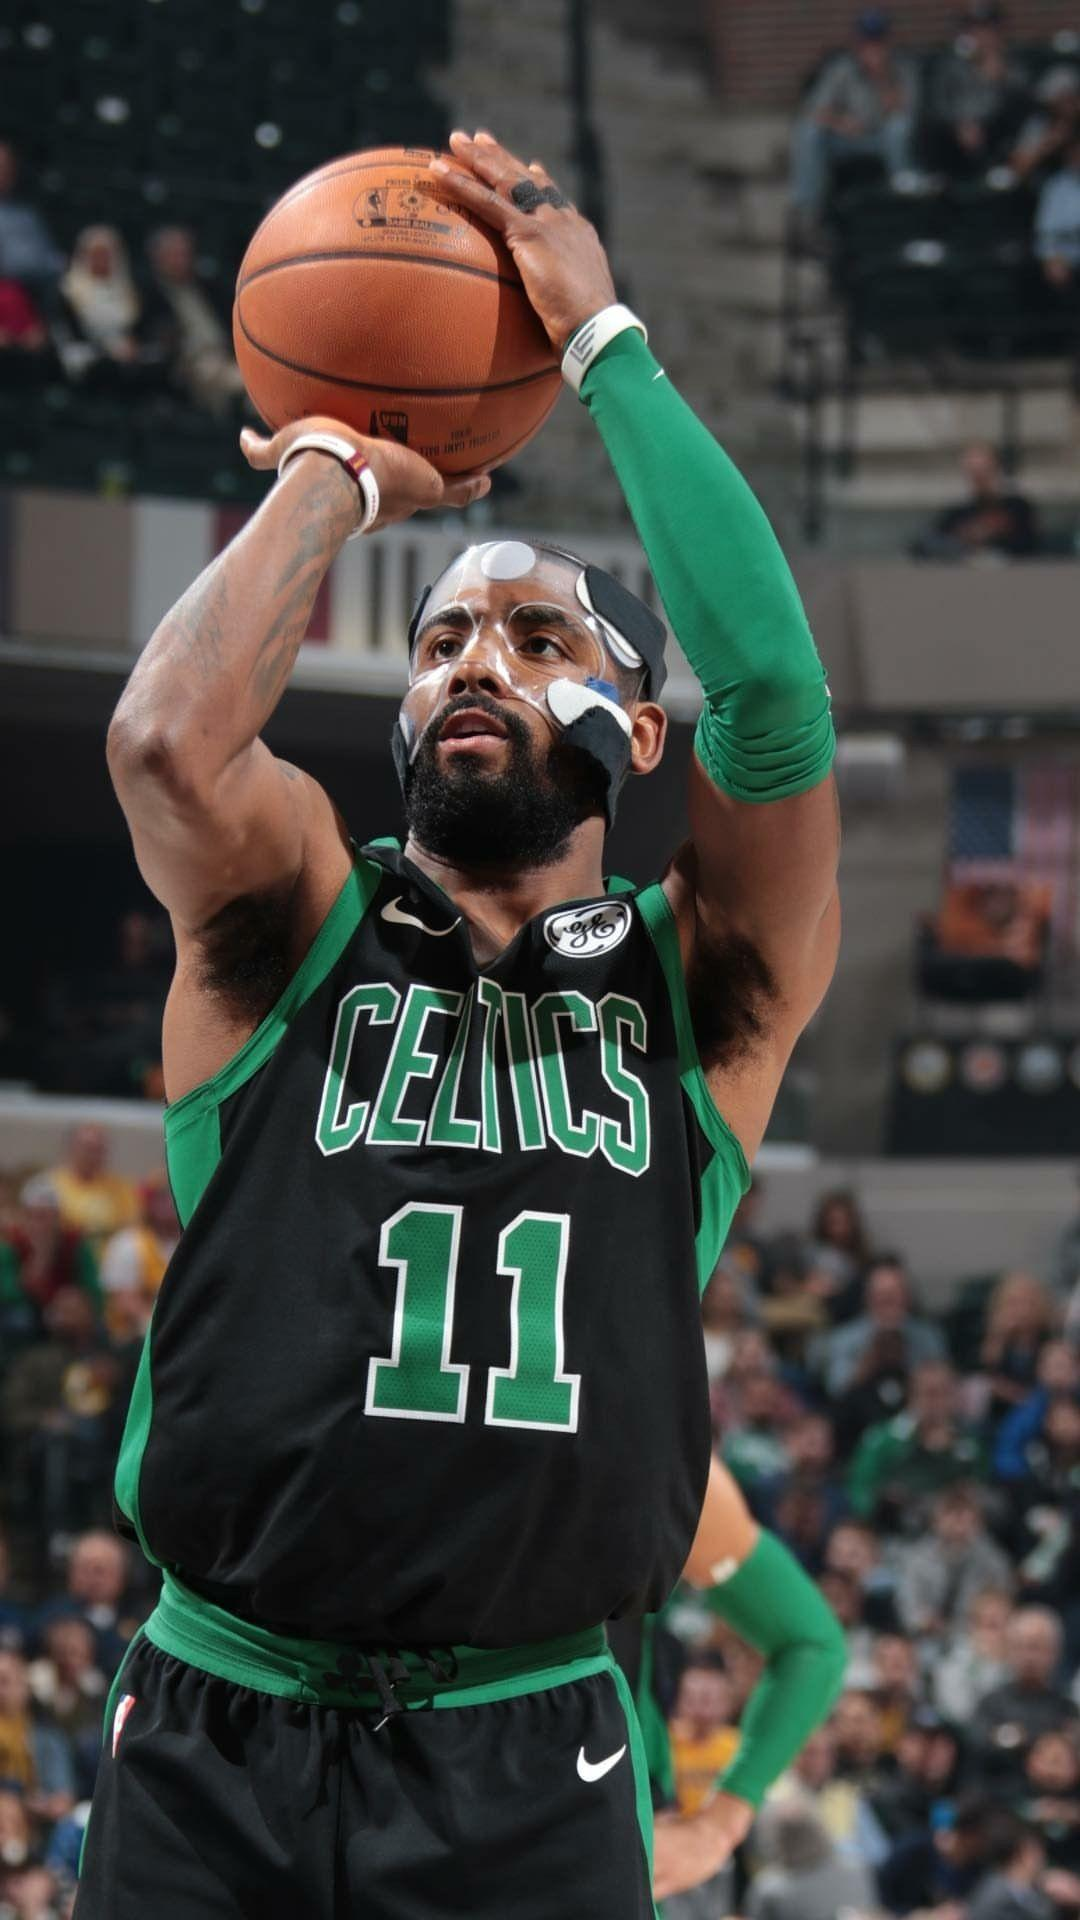 Celtics Kyrie Irving Wallpapers - Wallpaper Cave